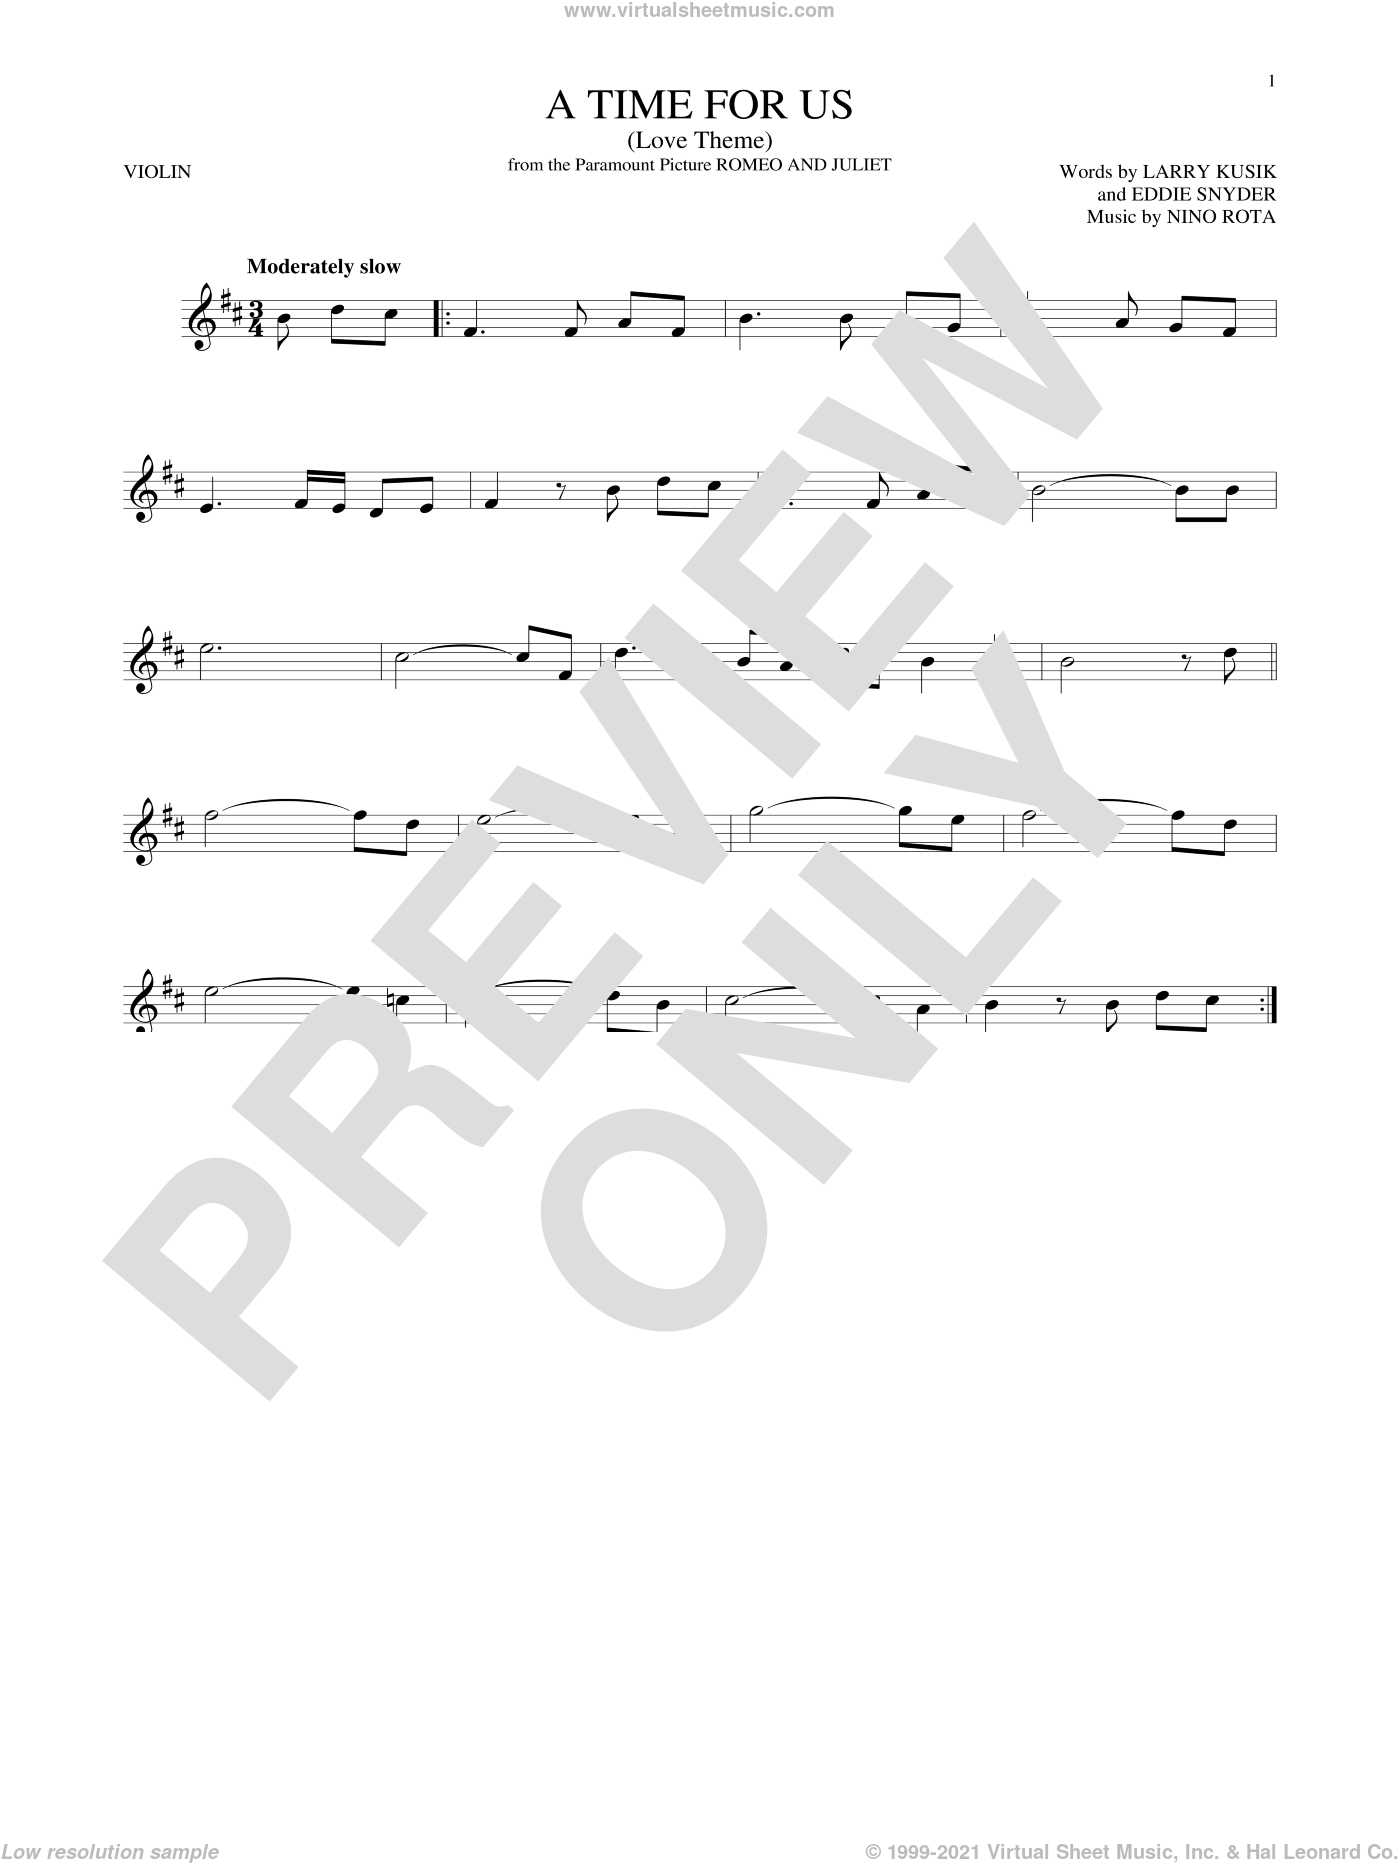 A Time For Us (Love Theme) sheet music for violin solo by Larry Kusik